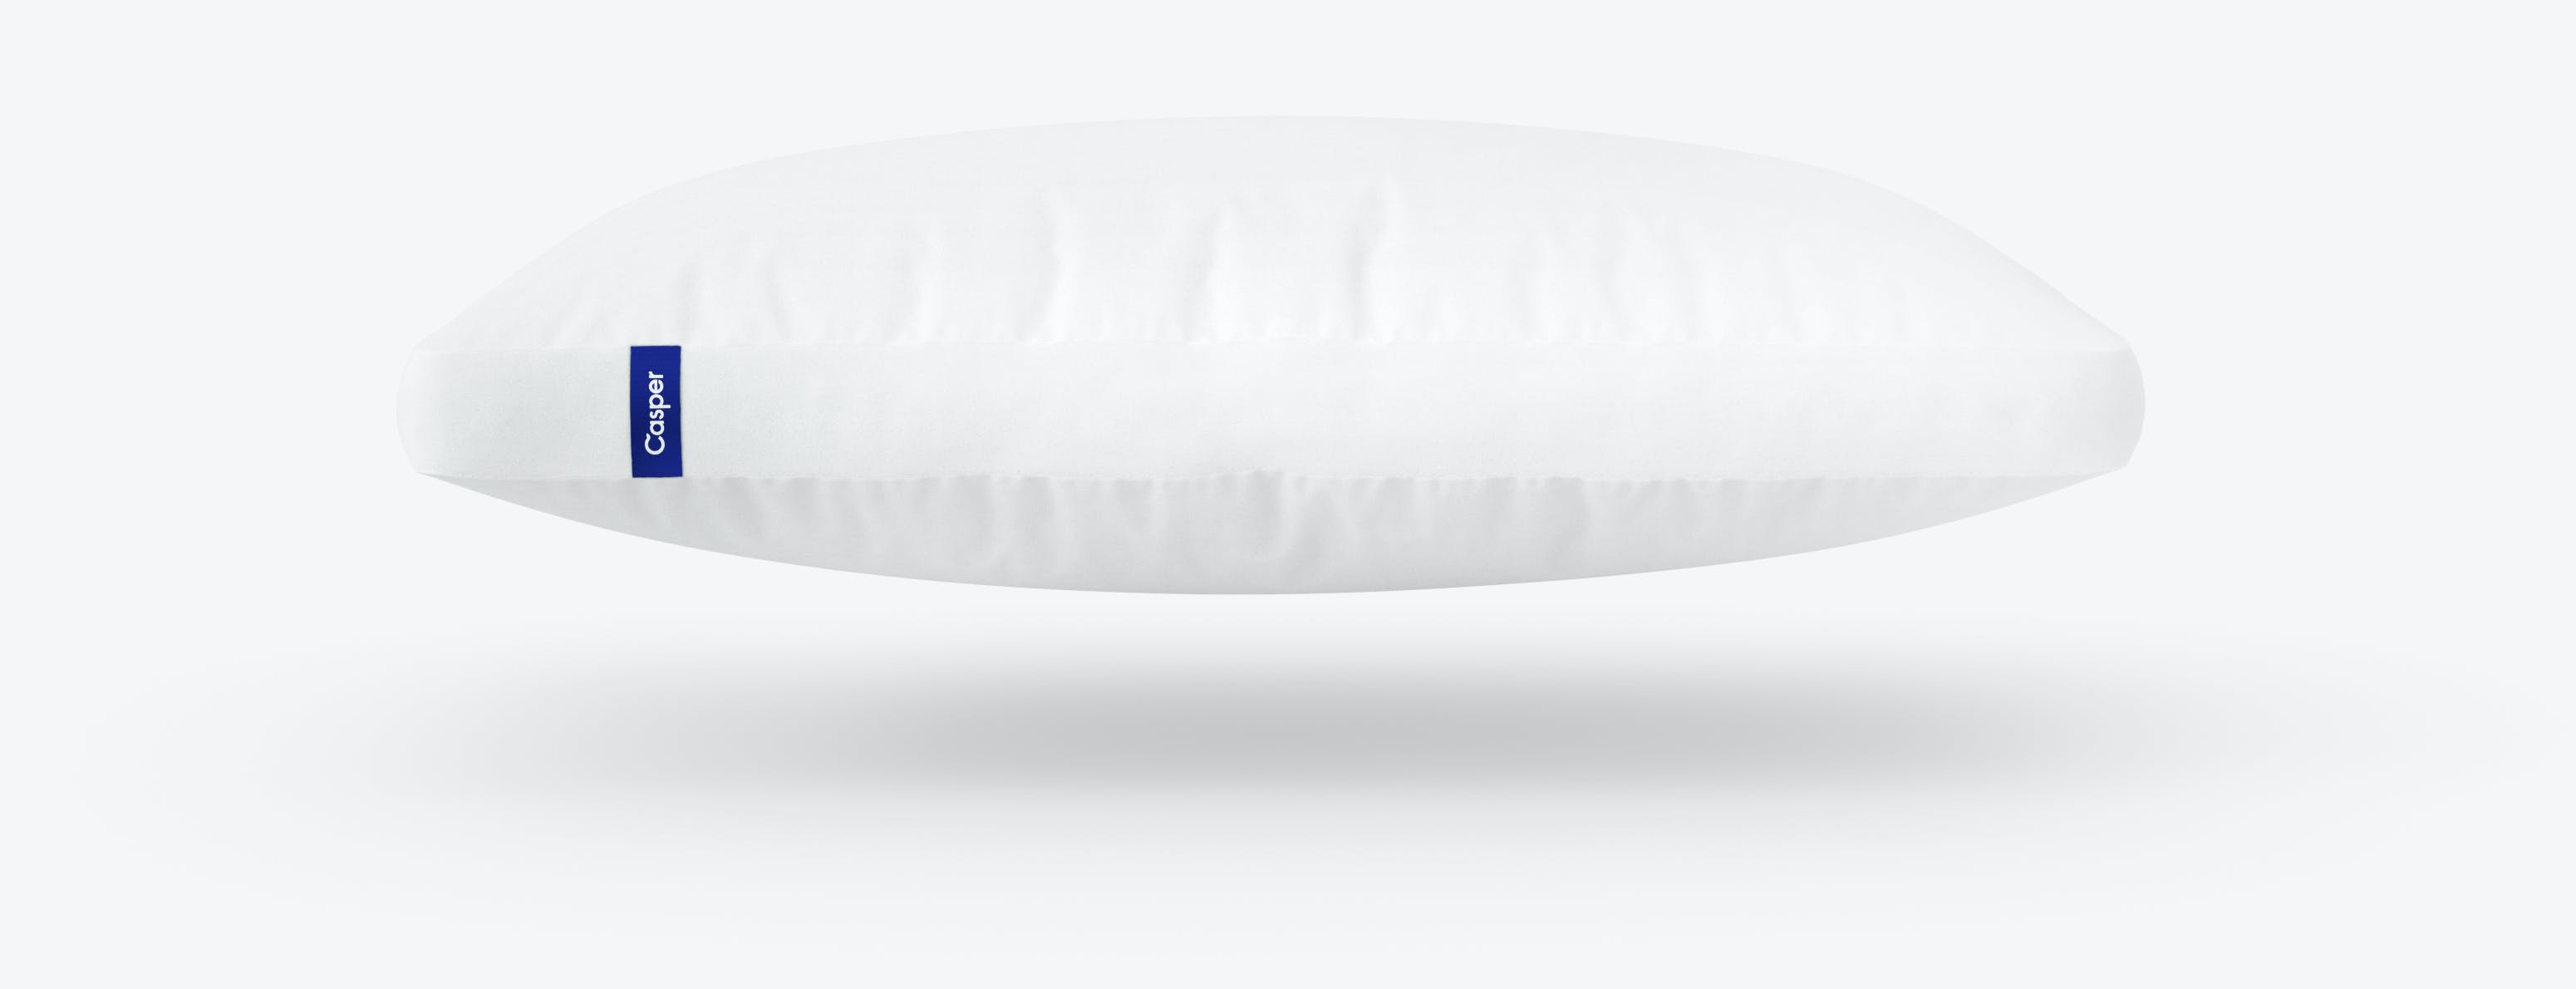 Casper Pillow side view